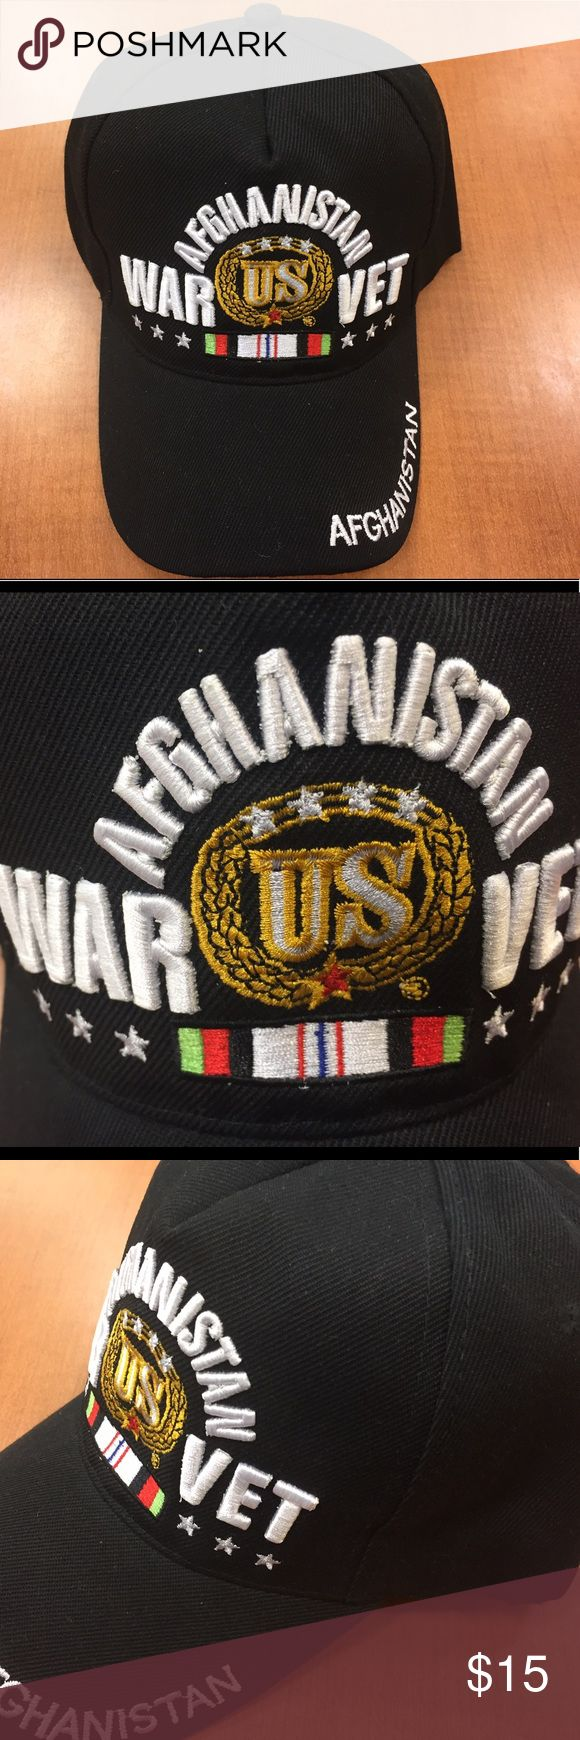 Afghanistan veterans military baseball cap black Our Embroidered Military baseball cap is the ultimate cap. It is a 6-Panel constructed cap with top notch workmanshipIt features 3-D High Definition embroidery on the crown, embroidery on both the edge and top of the bill, and an adjustable Velcro strap with a woven  Afghanistan veteran embroidered across. 100% Acrylic Accessories Hats